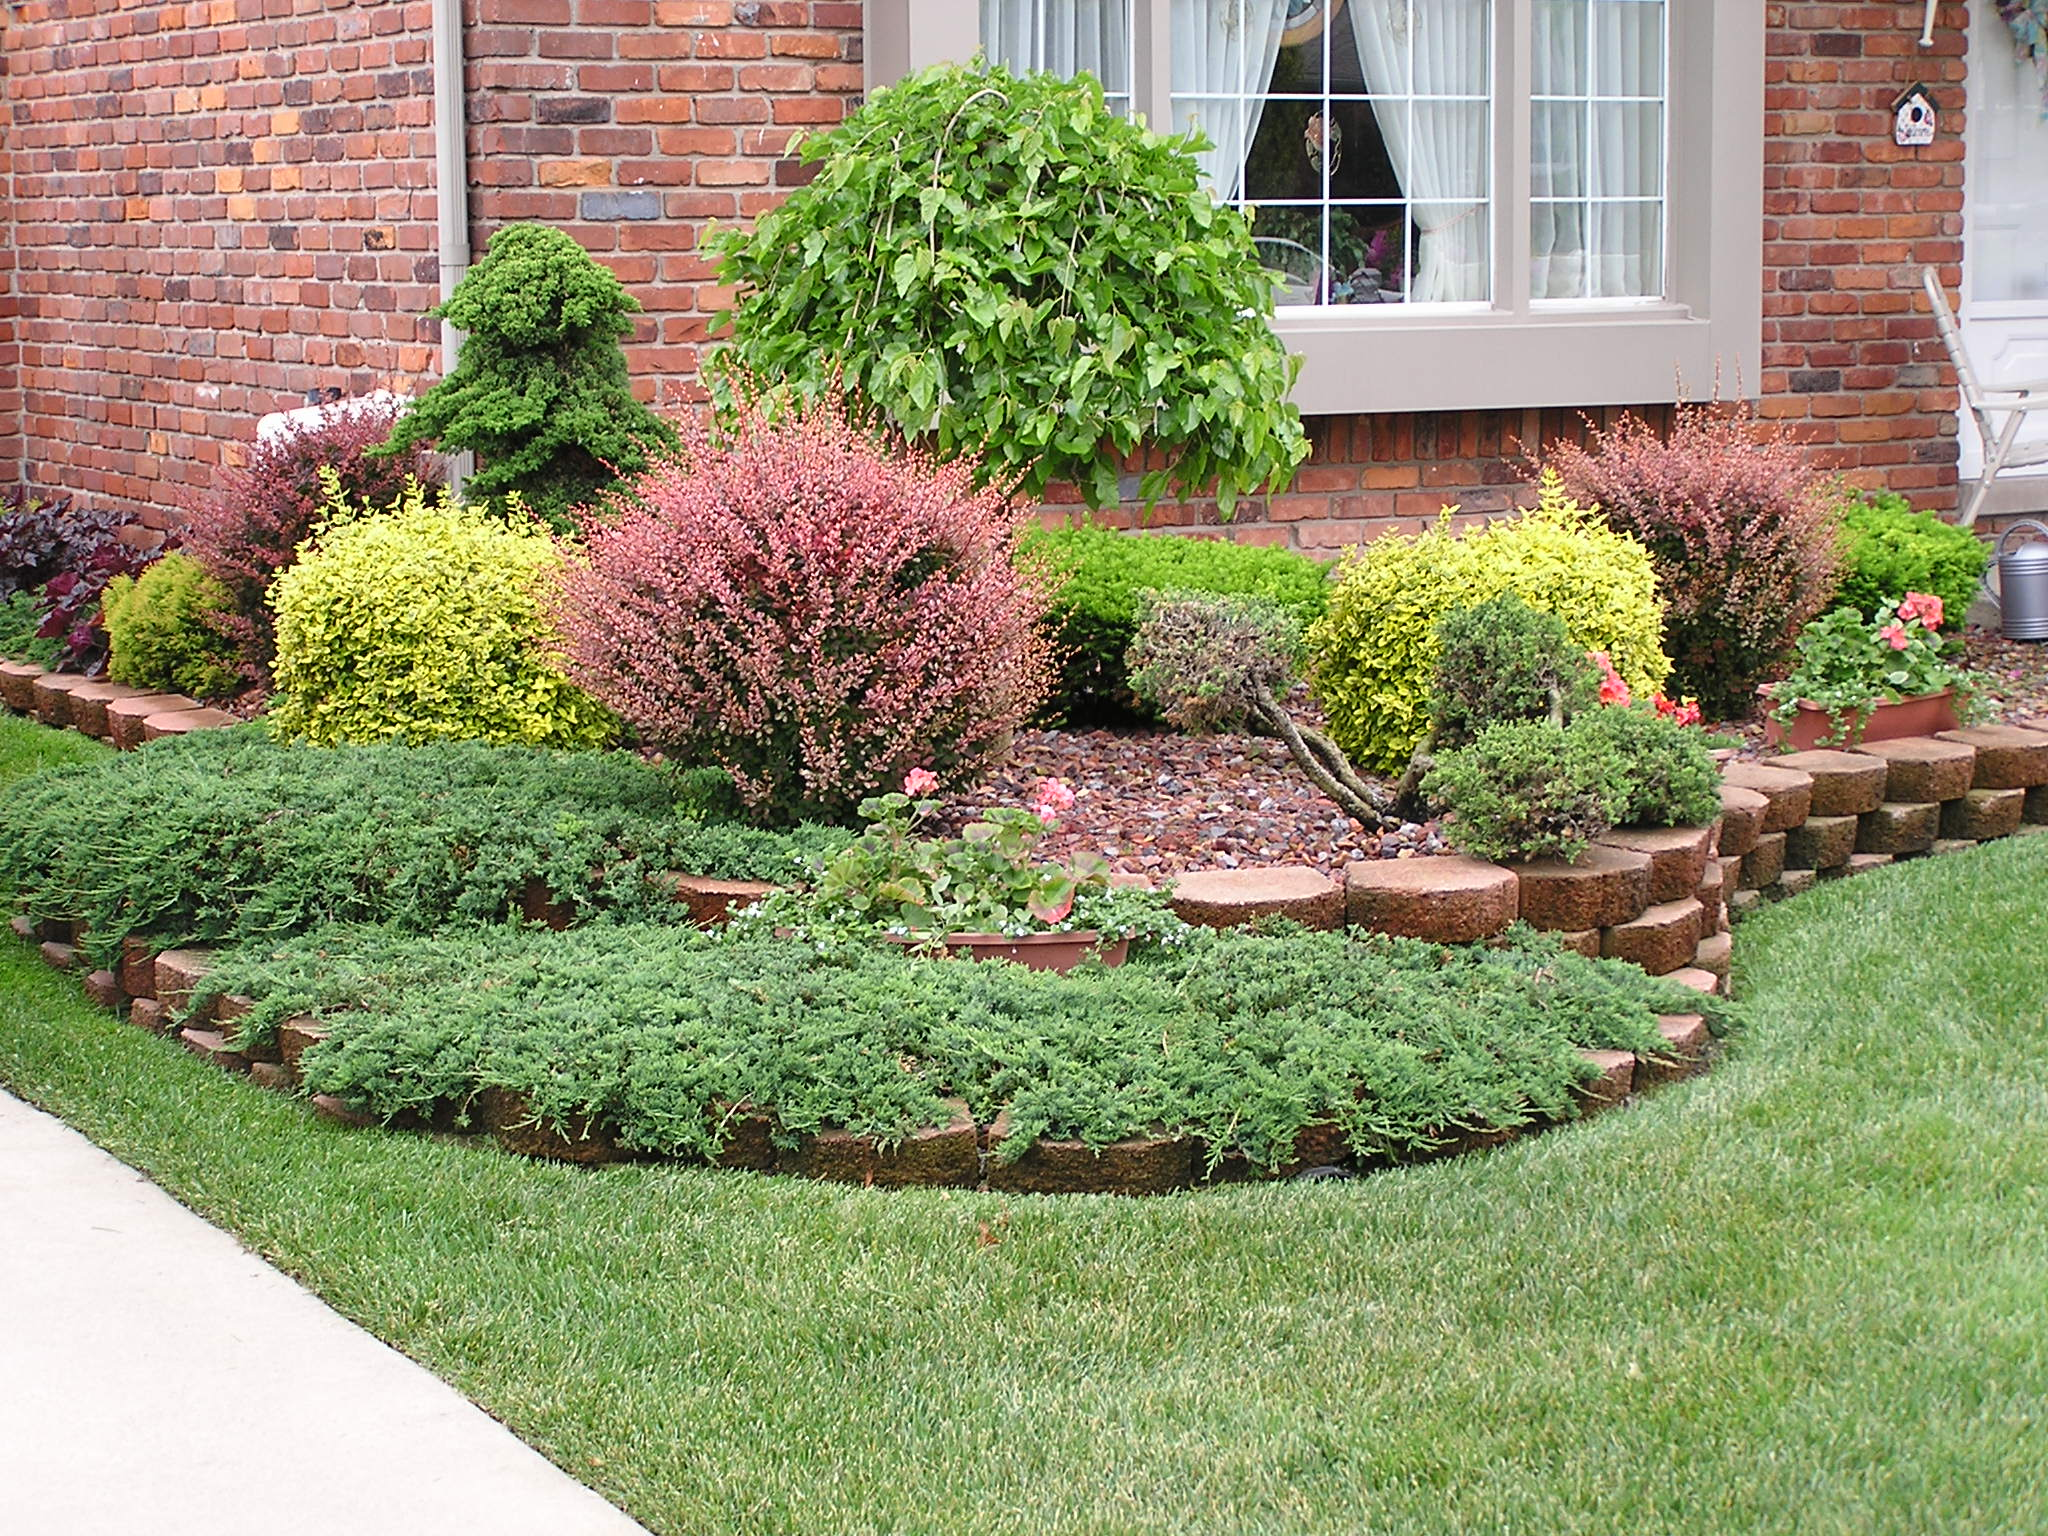 Marvelous Small Front Gardening Ideas With Green Garden And Flower Outdoor  Decors As Inspiring Front Yard Landscaping Ideas With Brick Wall Facade  Country ...